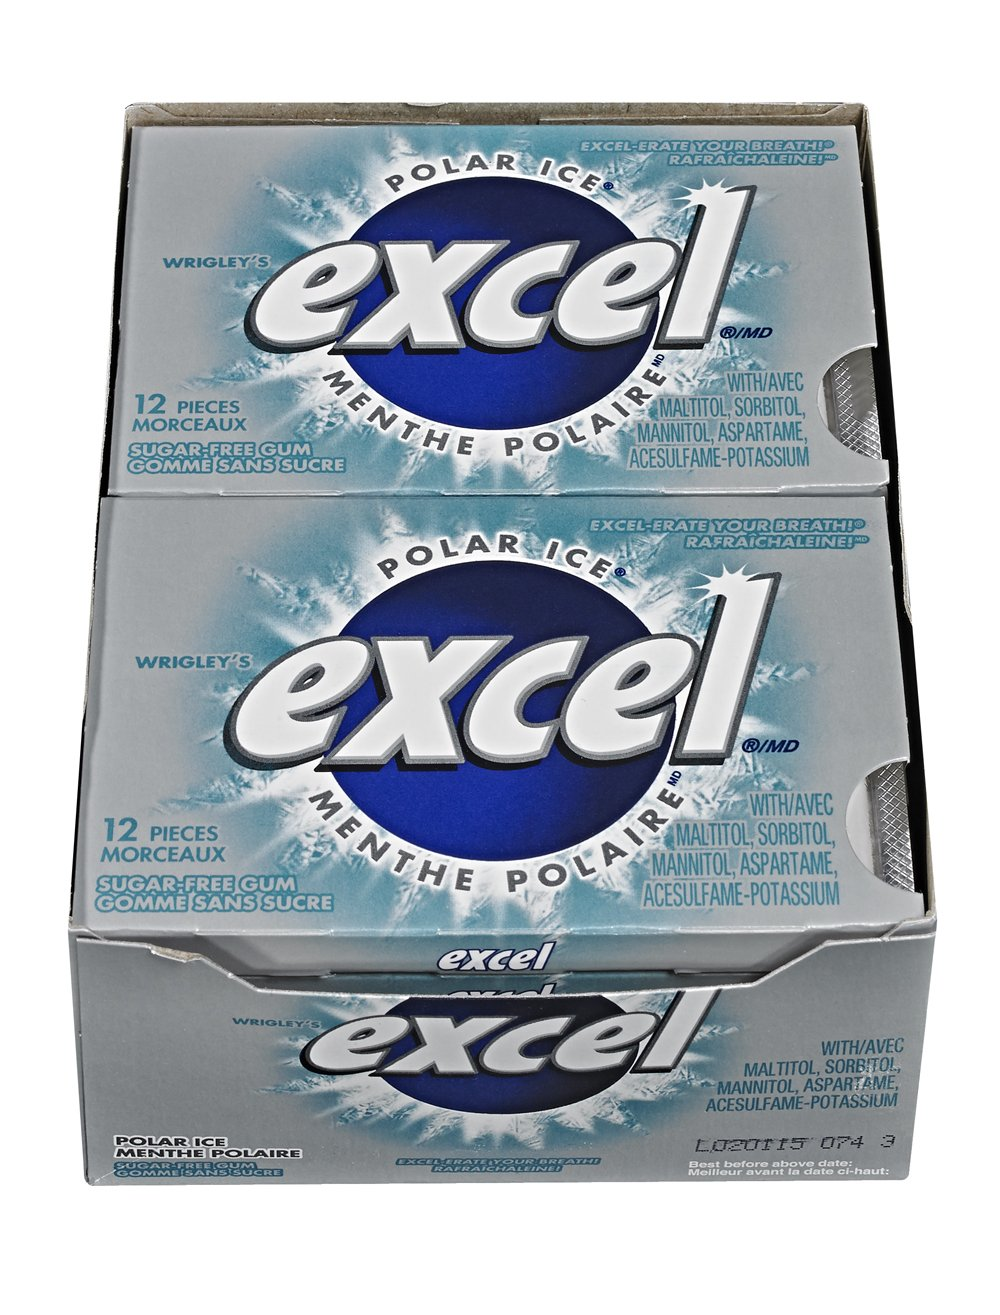 Excel Sugar-free Pellet Gum, 12ct - 12pk, Polar Ice {Imported from Canada}